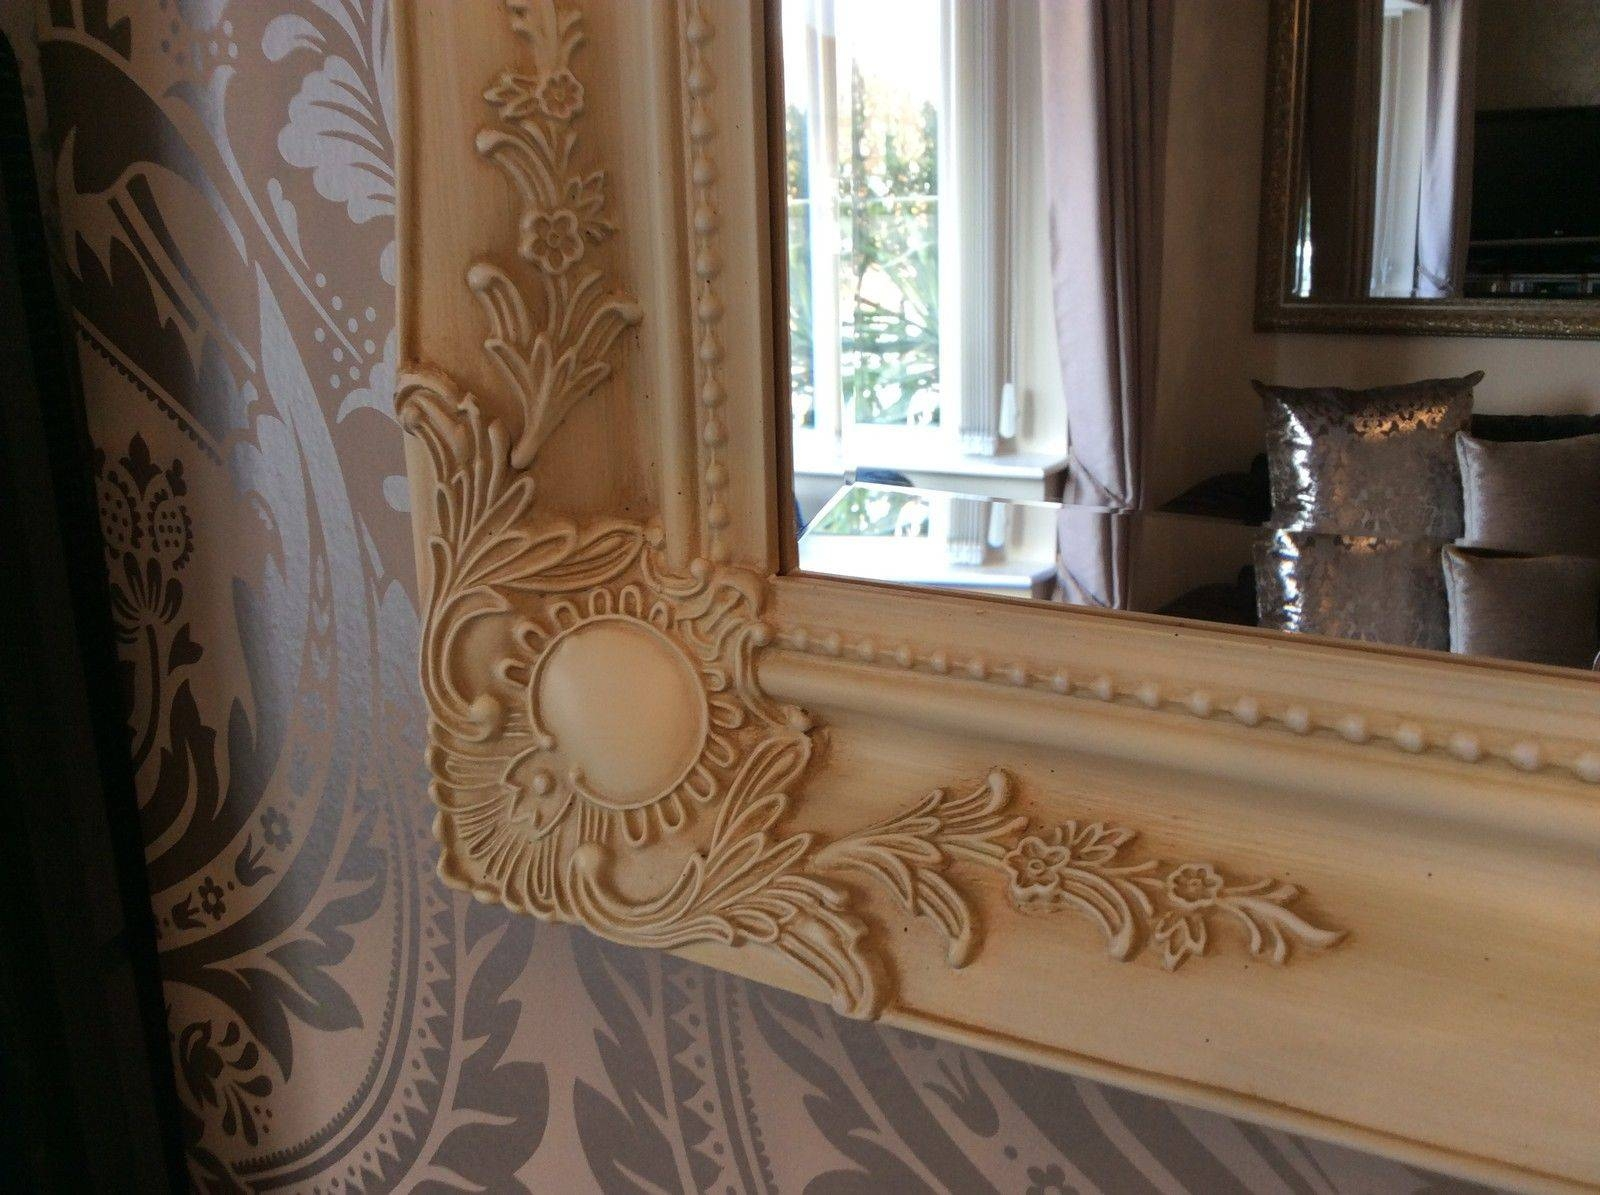 Ornate Cream Ivory Shabby Chic French Inspired Mirror - Bargain within Ivory Ornate Mirrors (Image 17 of 25)